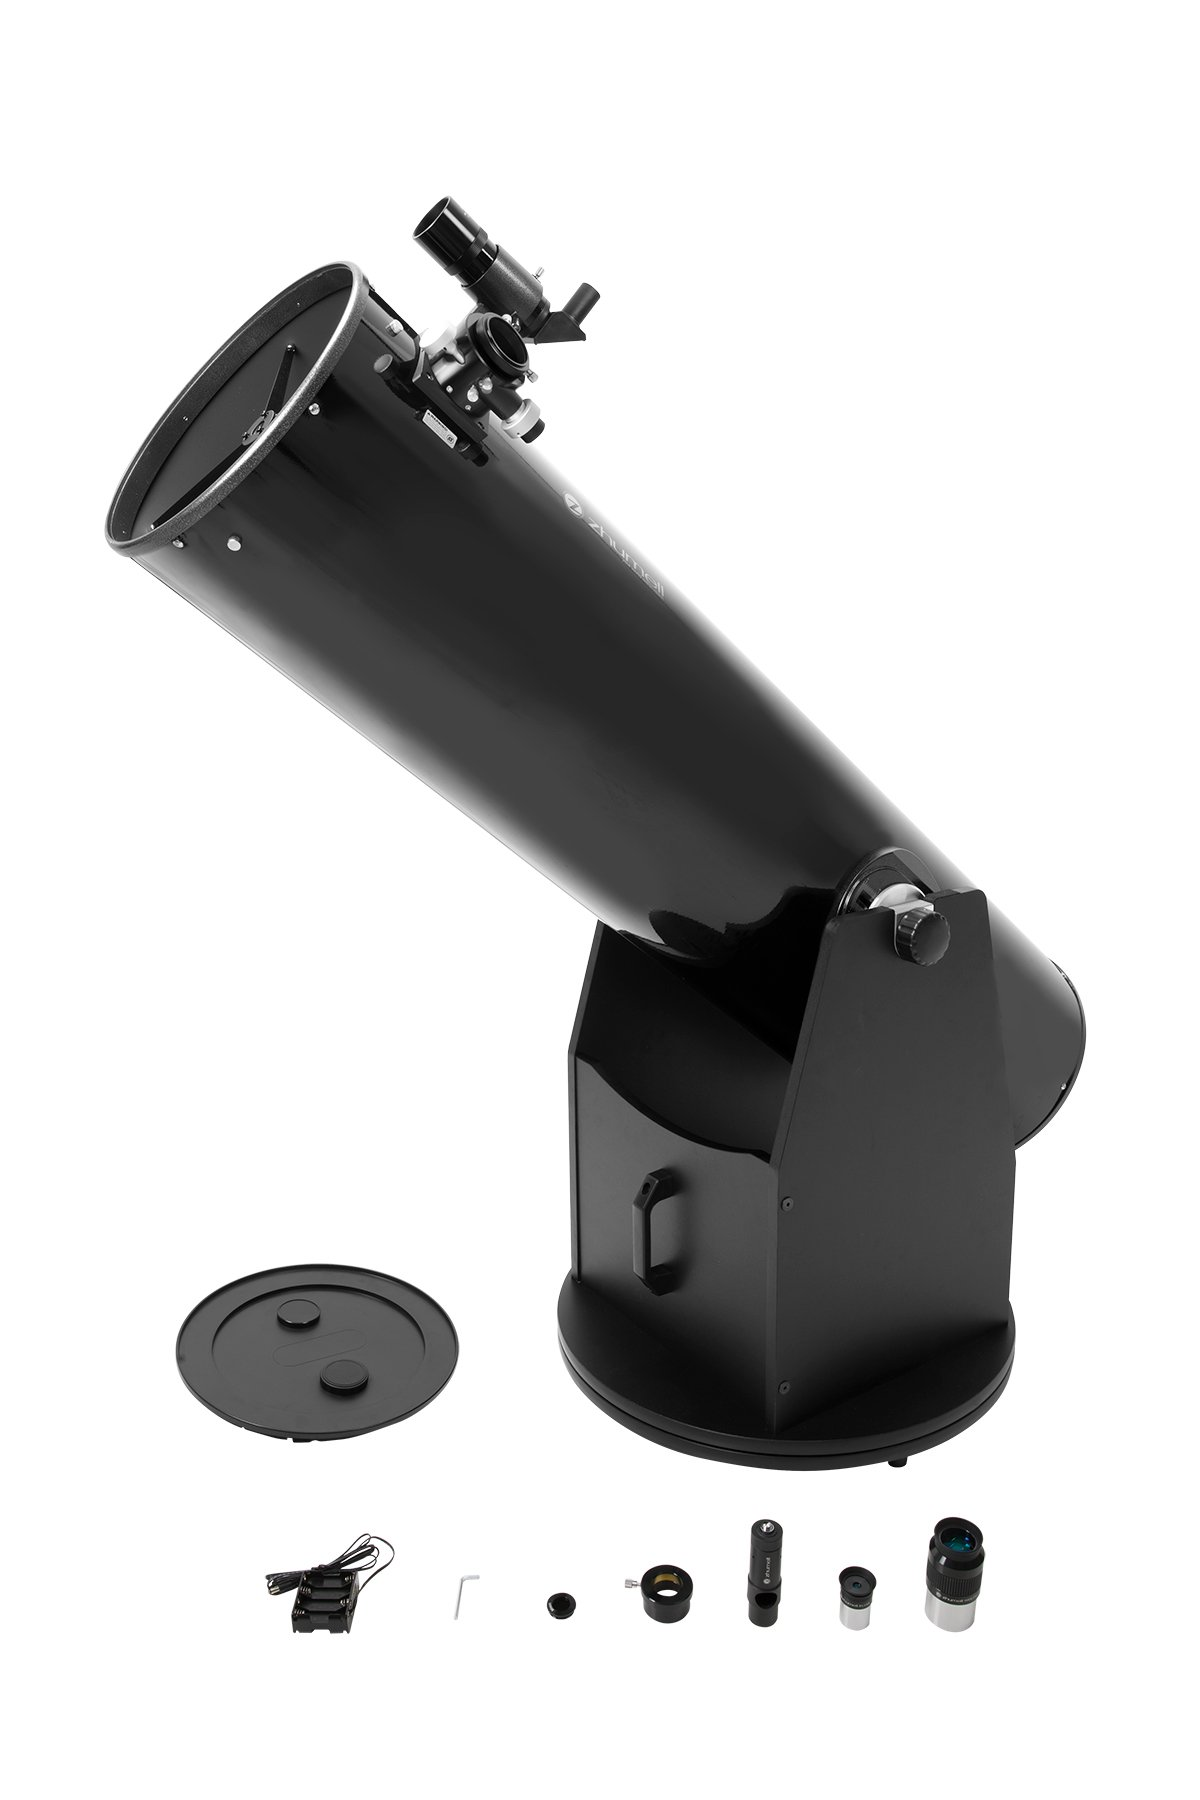 Zhumell Z12 Deluxe Dobsonian Reflector Telescope by Zhumell